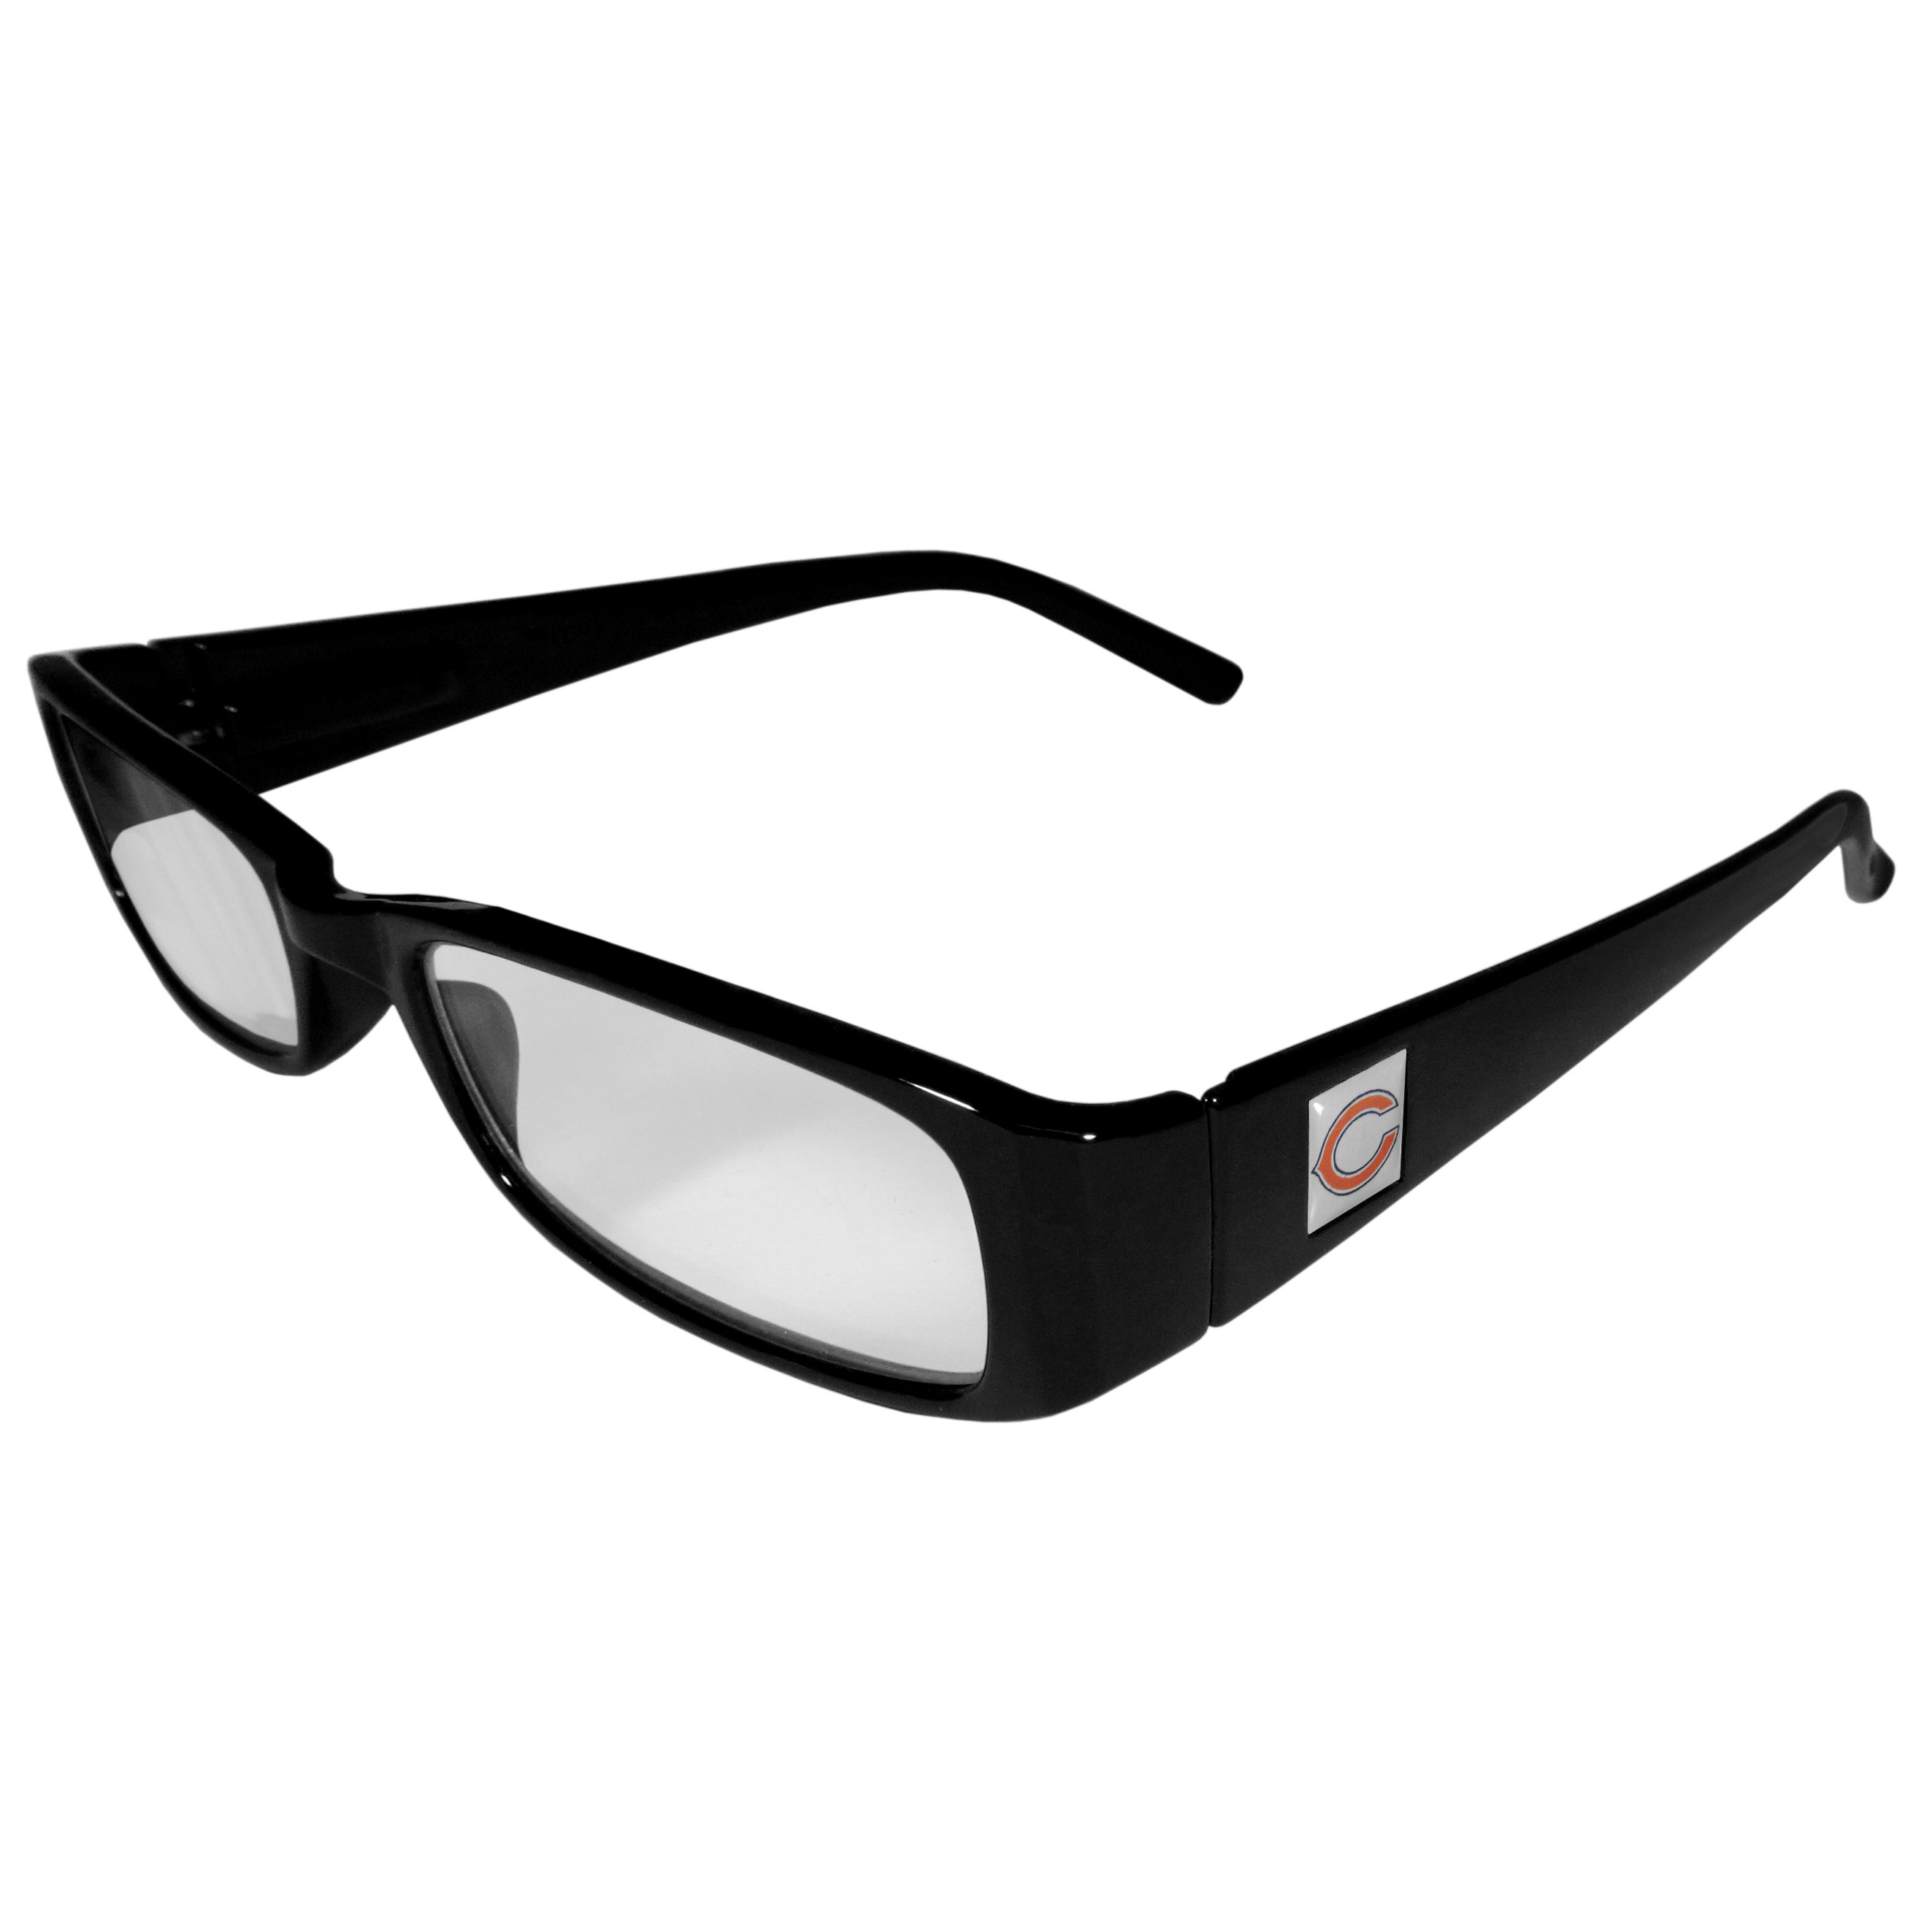 Chicago Bears Black Reading Glasses +1.25 - Our Chicago Bears reading glasses are 5.25 inches wide and feature the team logo on each arm. Magnification Power 1.25